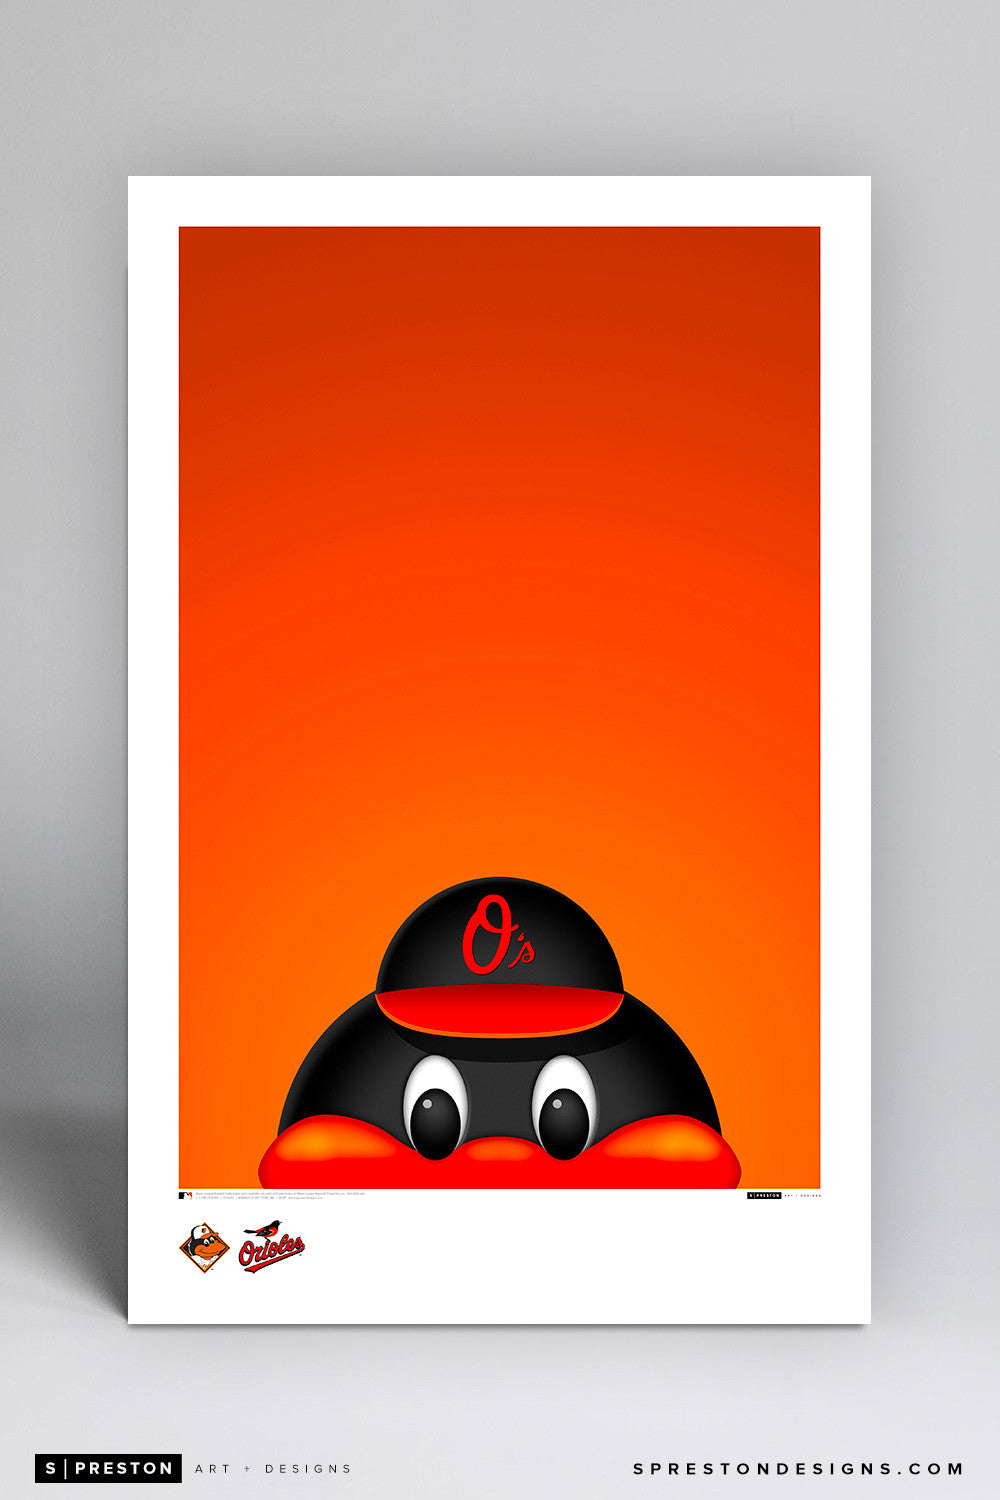 Minimalist Orioles Bird Art Poster Art Poster - Baltimore Orioles - S. Preston Art + Designs